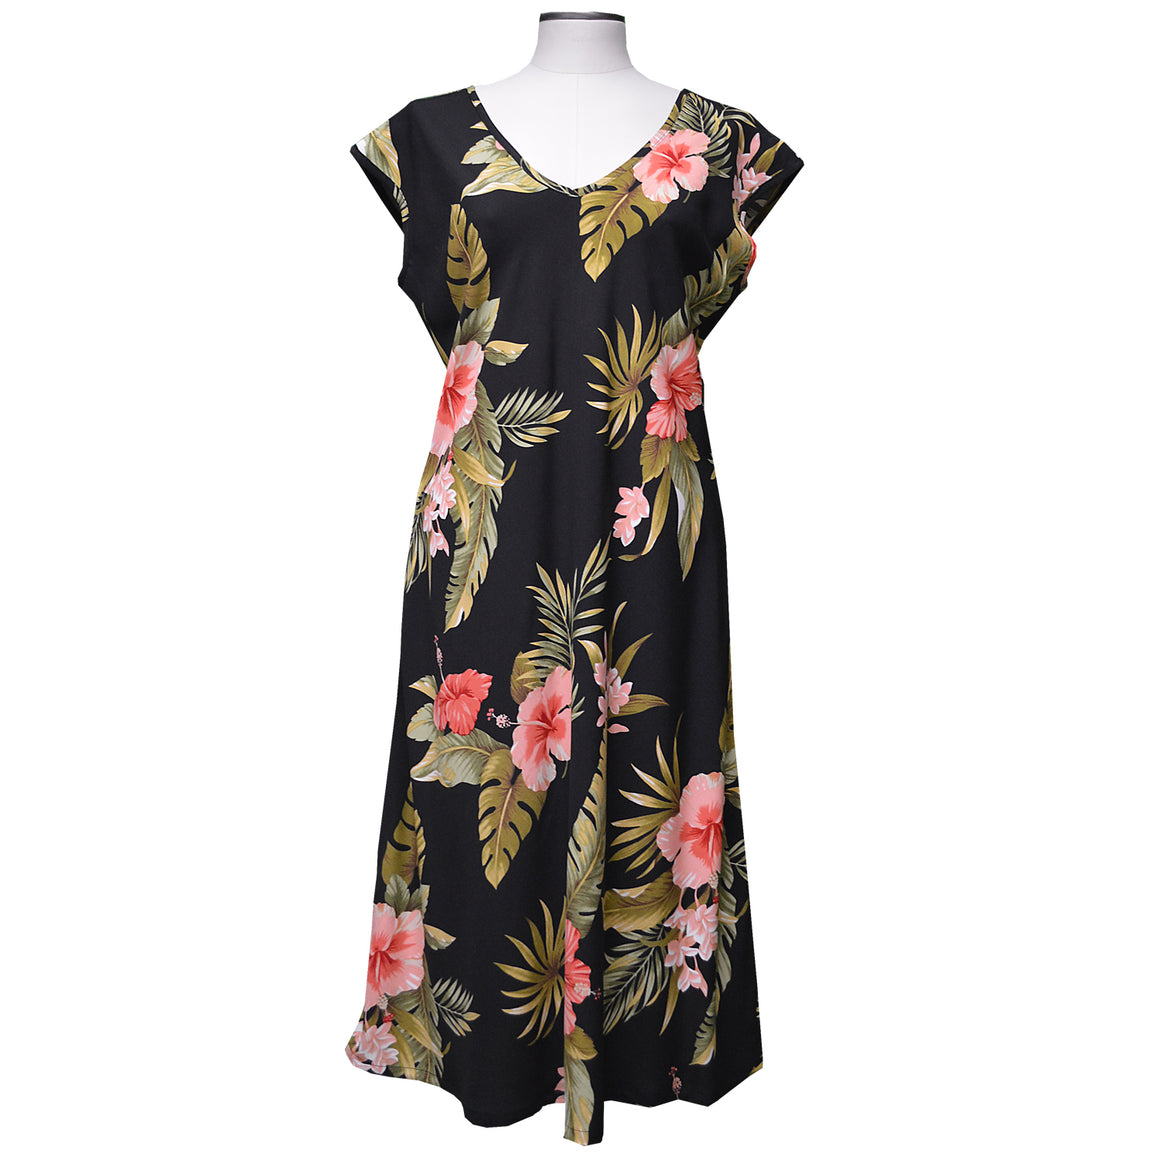 Hana Hibiscus Black Mid-Length Dress with Cap Sleeves